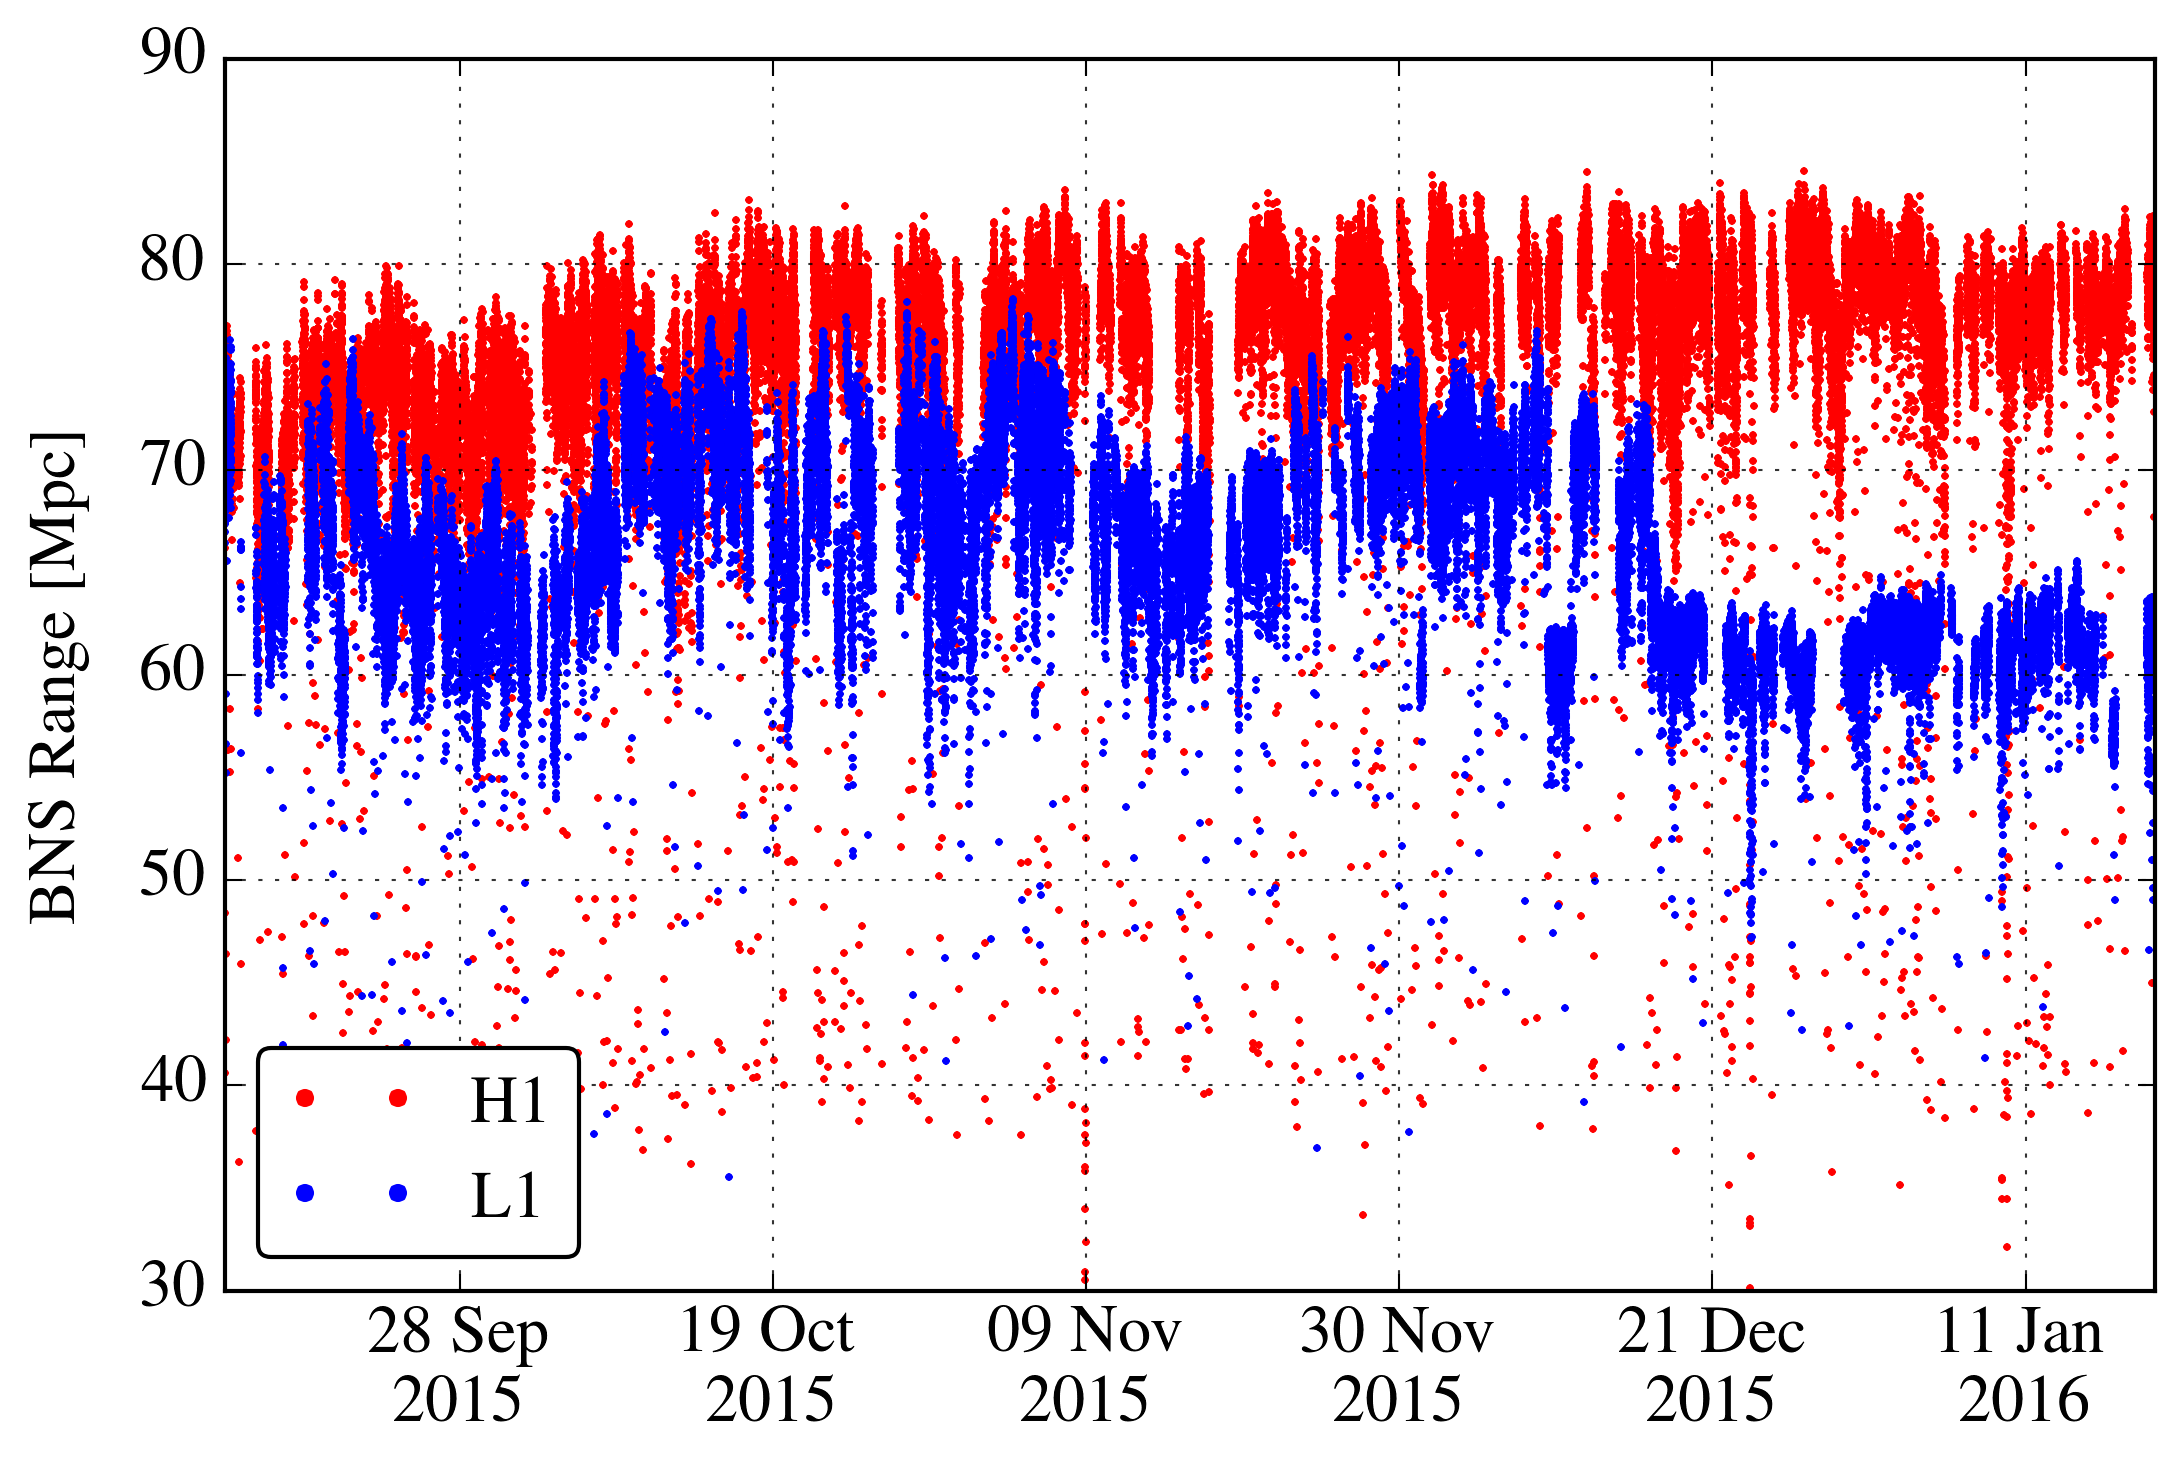 Sensitivity of the two Advanced LIGO detectors to binary neutron star inspirals, averaged over sky position and orientation and 1 minute of data. The sensitivity drop in the L1 interferometer at the end of the run was caused by electronics noise at one of the end stations. This noise was identified and eliminated shortly after the observing run.